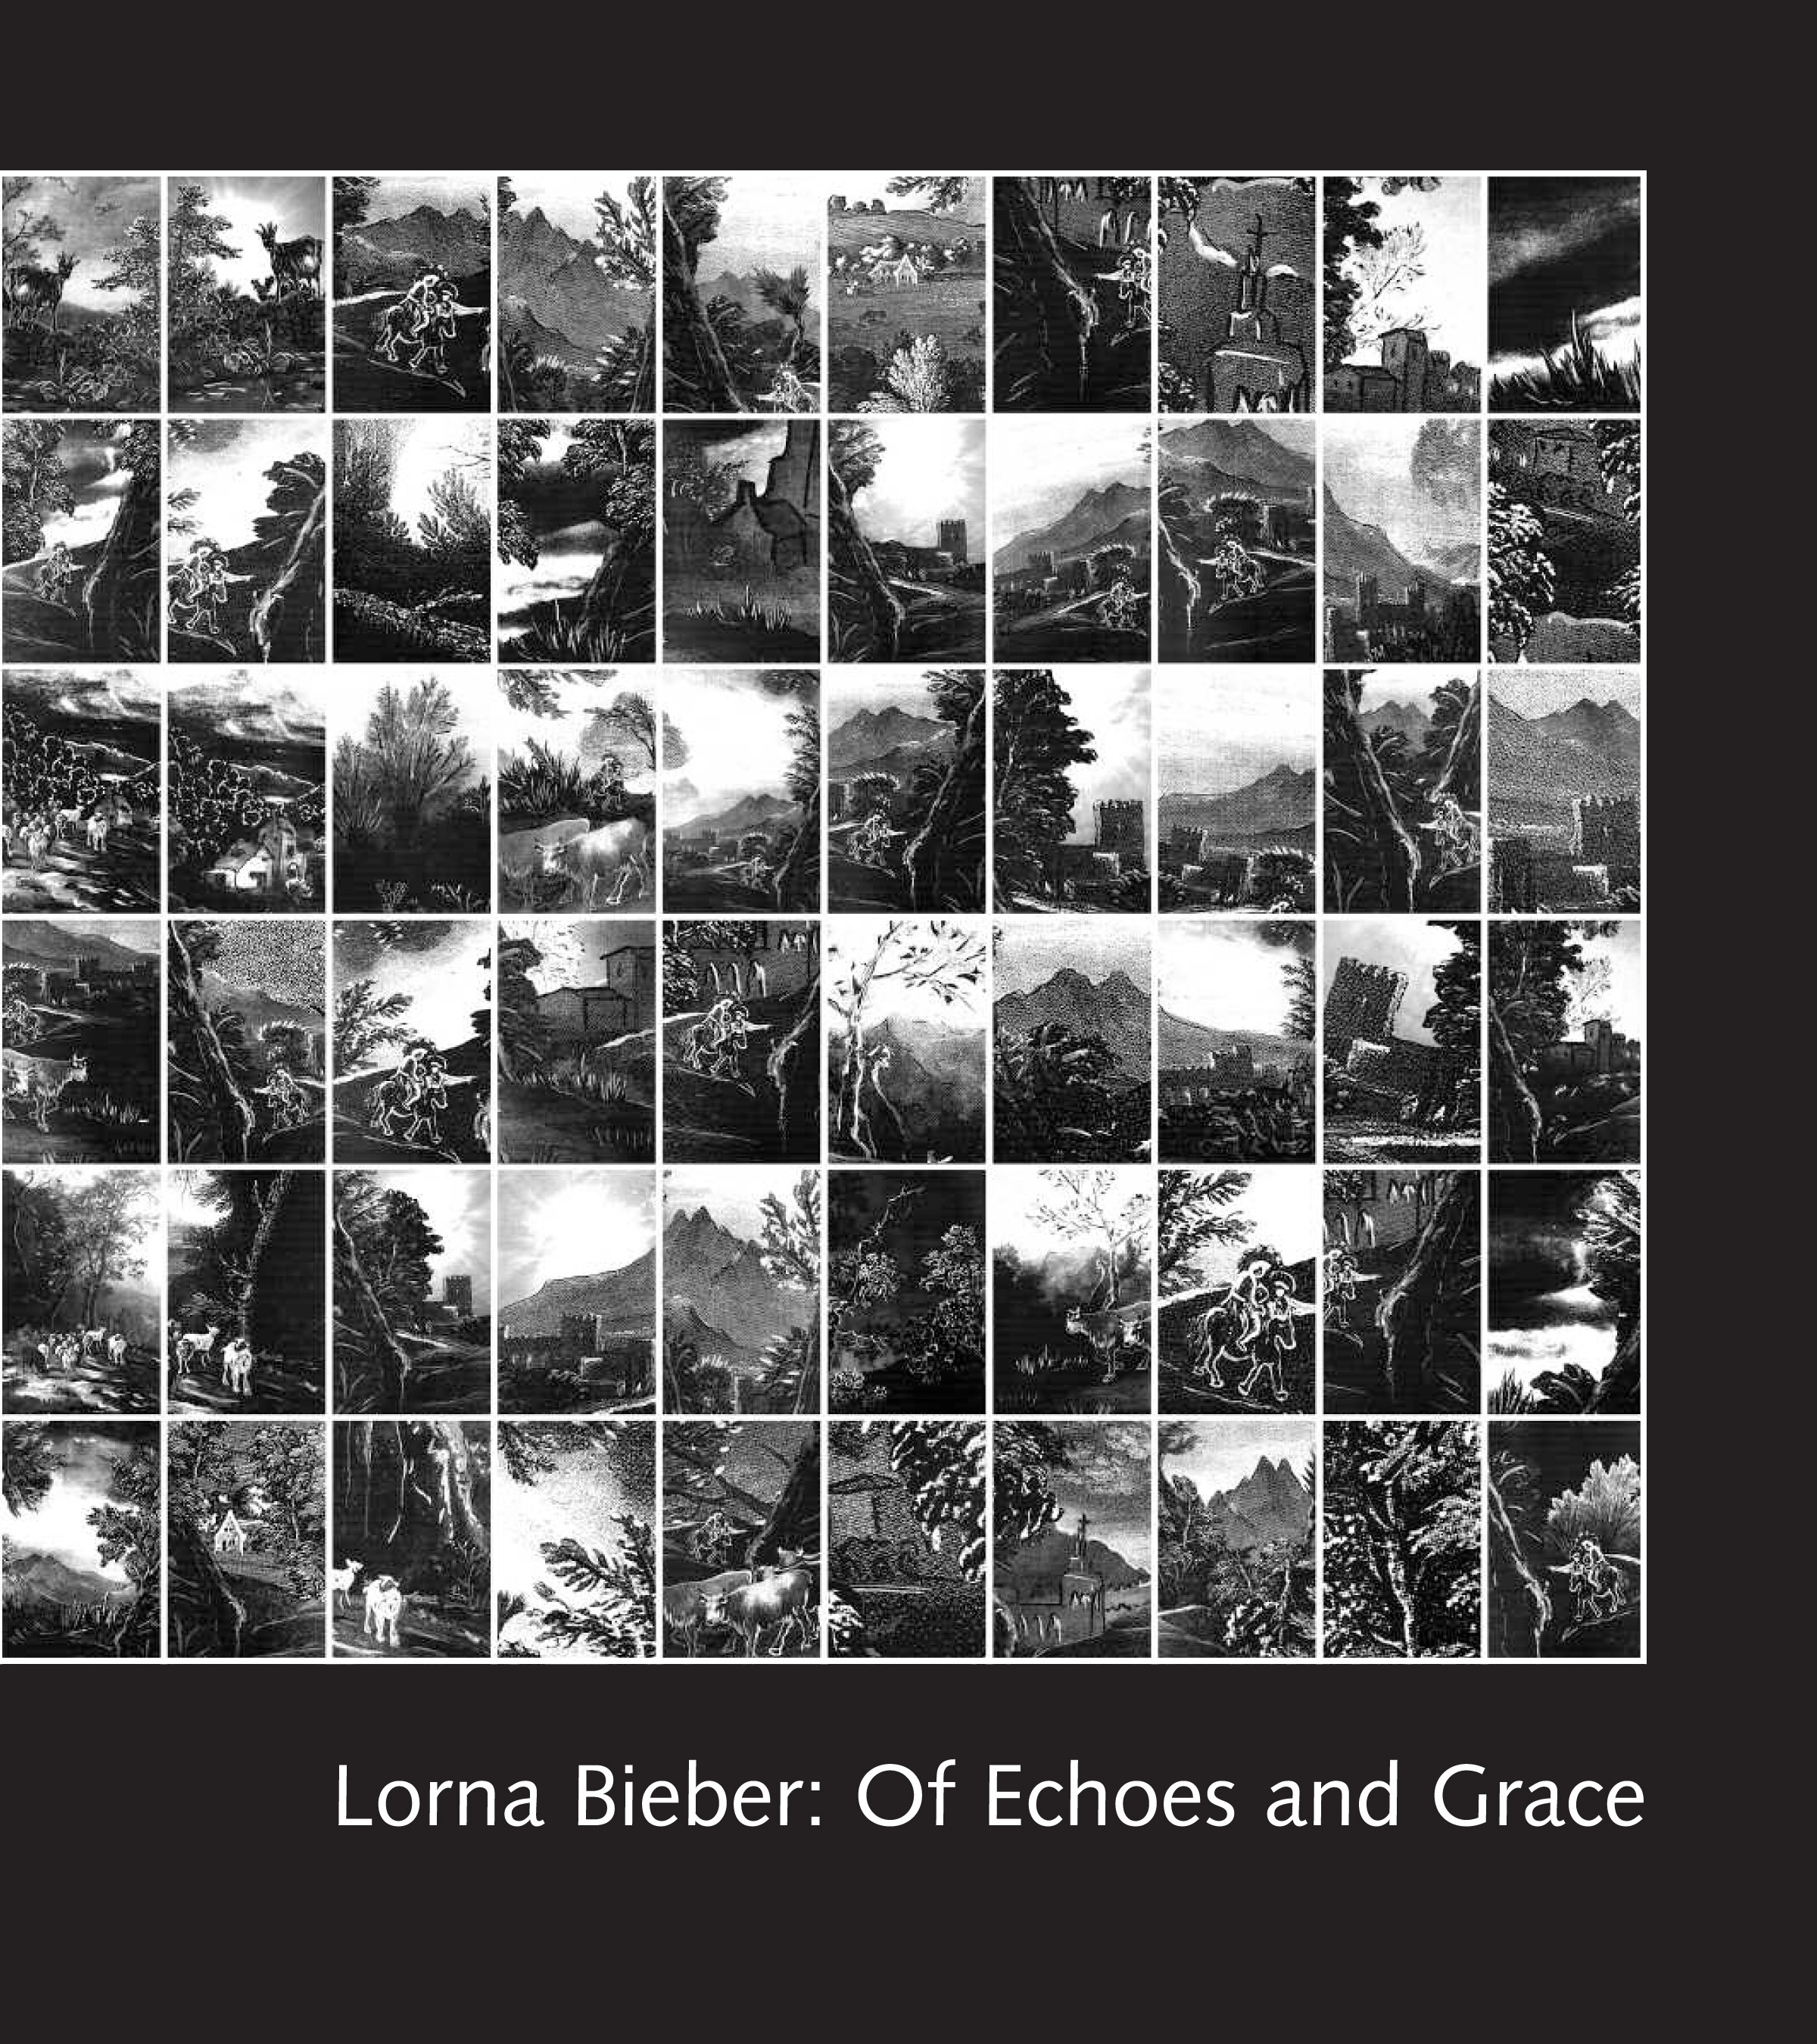 Lorna Bieber: Of Echoes and Grace